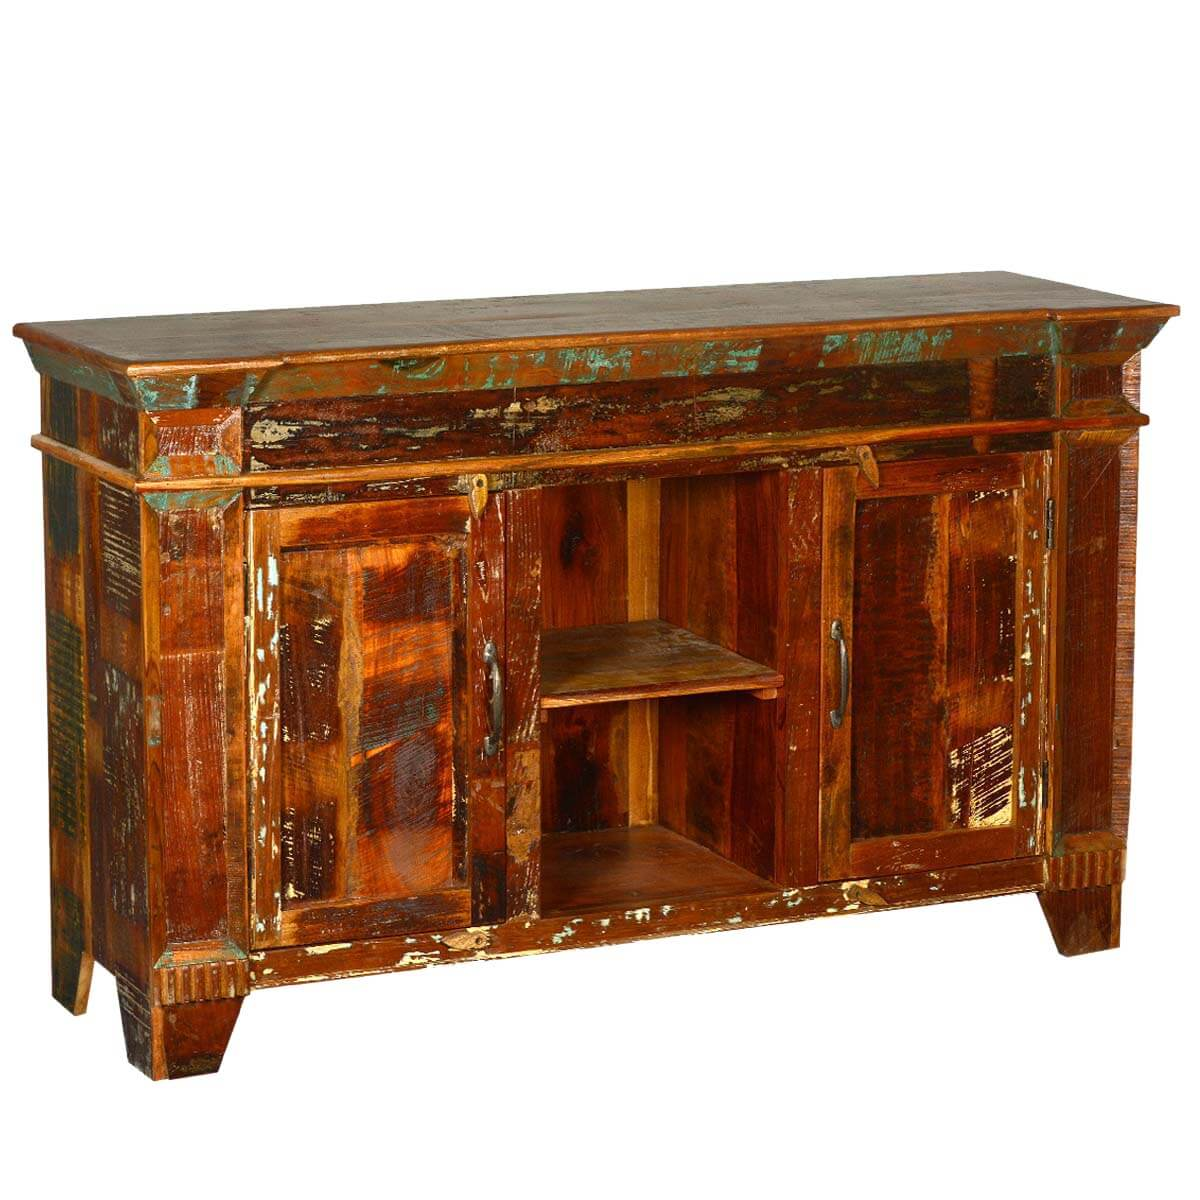 distressed sideboard buffet 28 images wood distressed  : 51071 from 45.77.156.71 size 1200 x 1200 jpeg 152kB